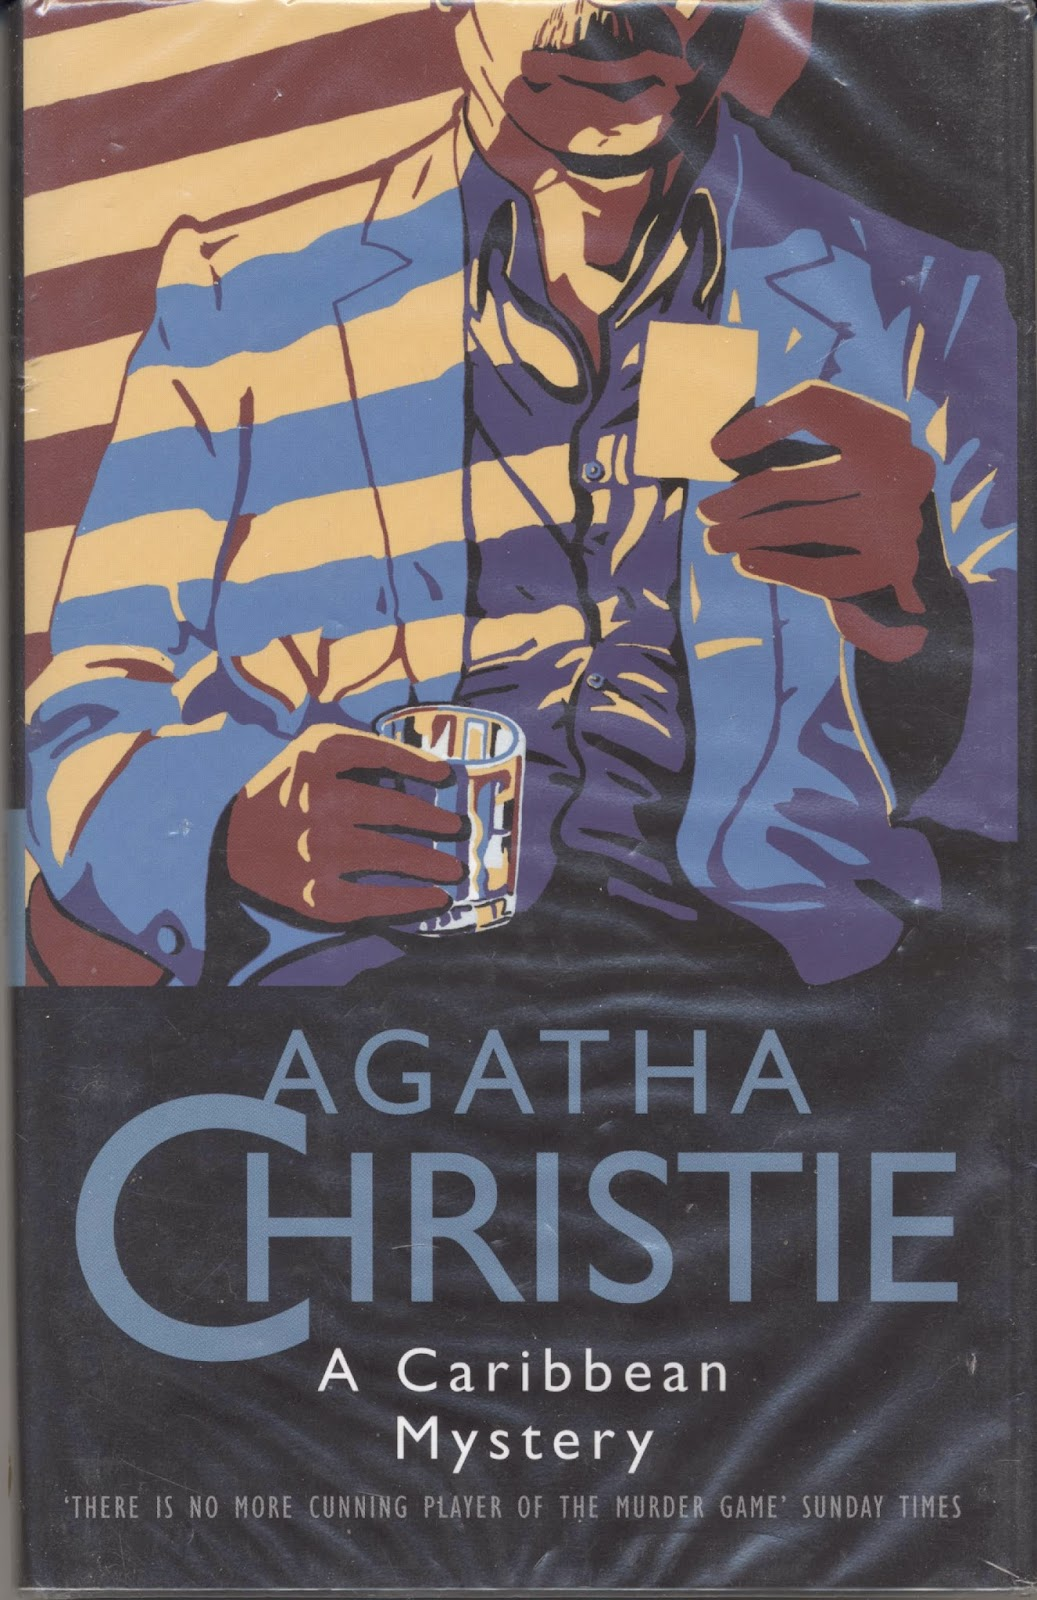 an analysis of the novels of agatha christie Agatha christie (1890-1976) was an english crime novelist, short story writer and playwright although she wrote six romance novels under the pseudonym mary westmacott, her reputation rests on the 66 detective novels and 14 short story collections that she wrote under her own name, which have.